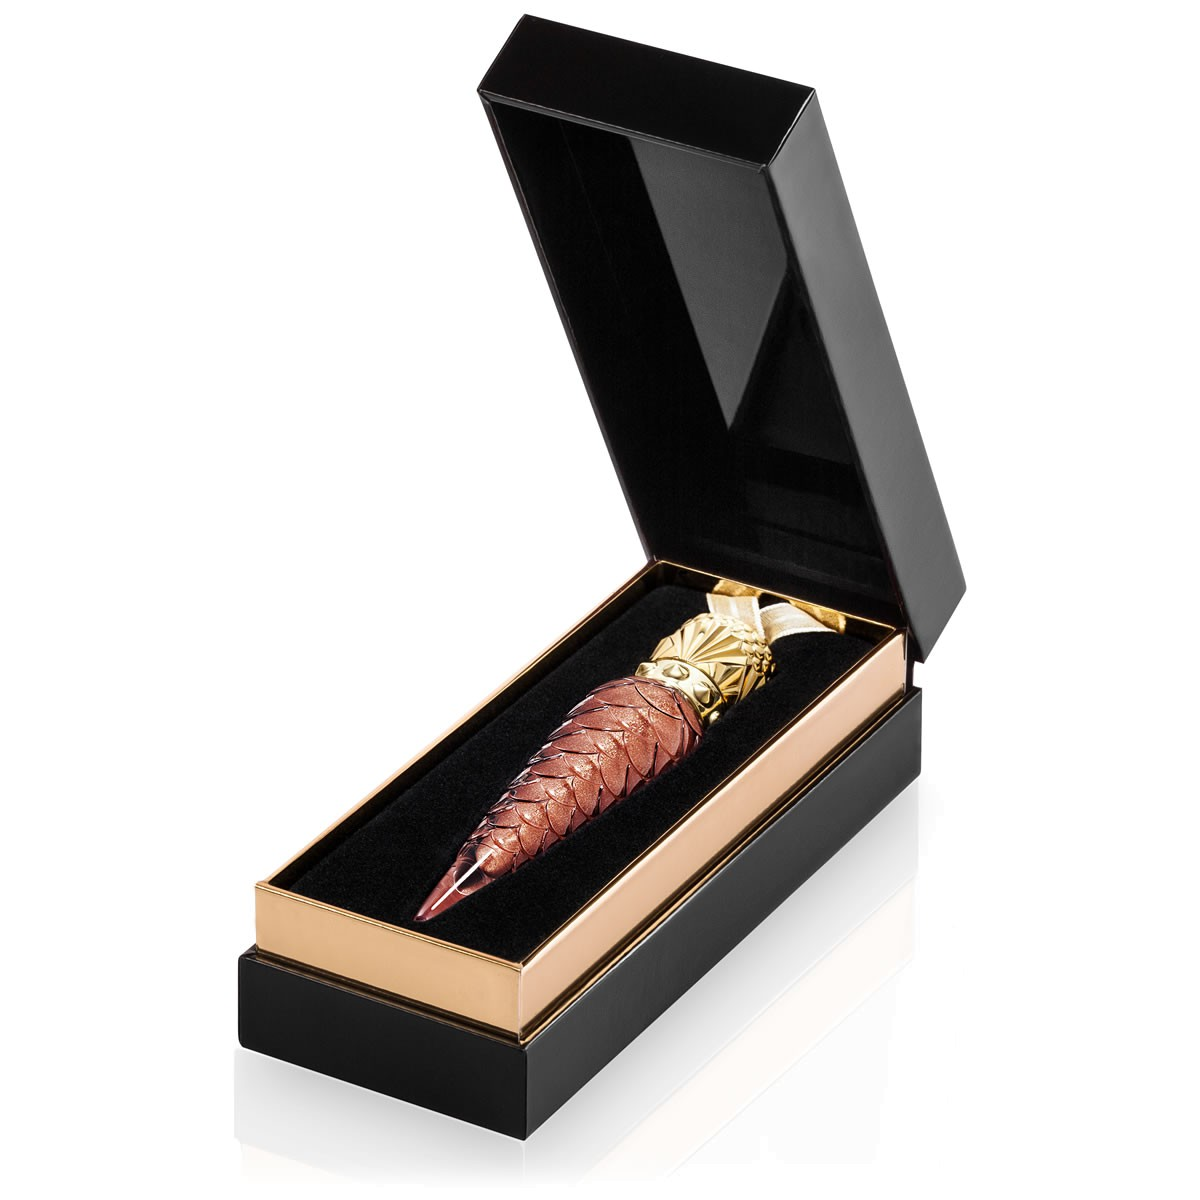 Beauty - Bronzissima Loubilaque Lip Lacquer - Christian Louboutin